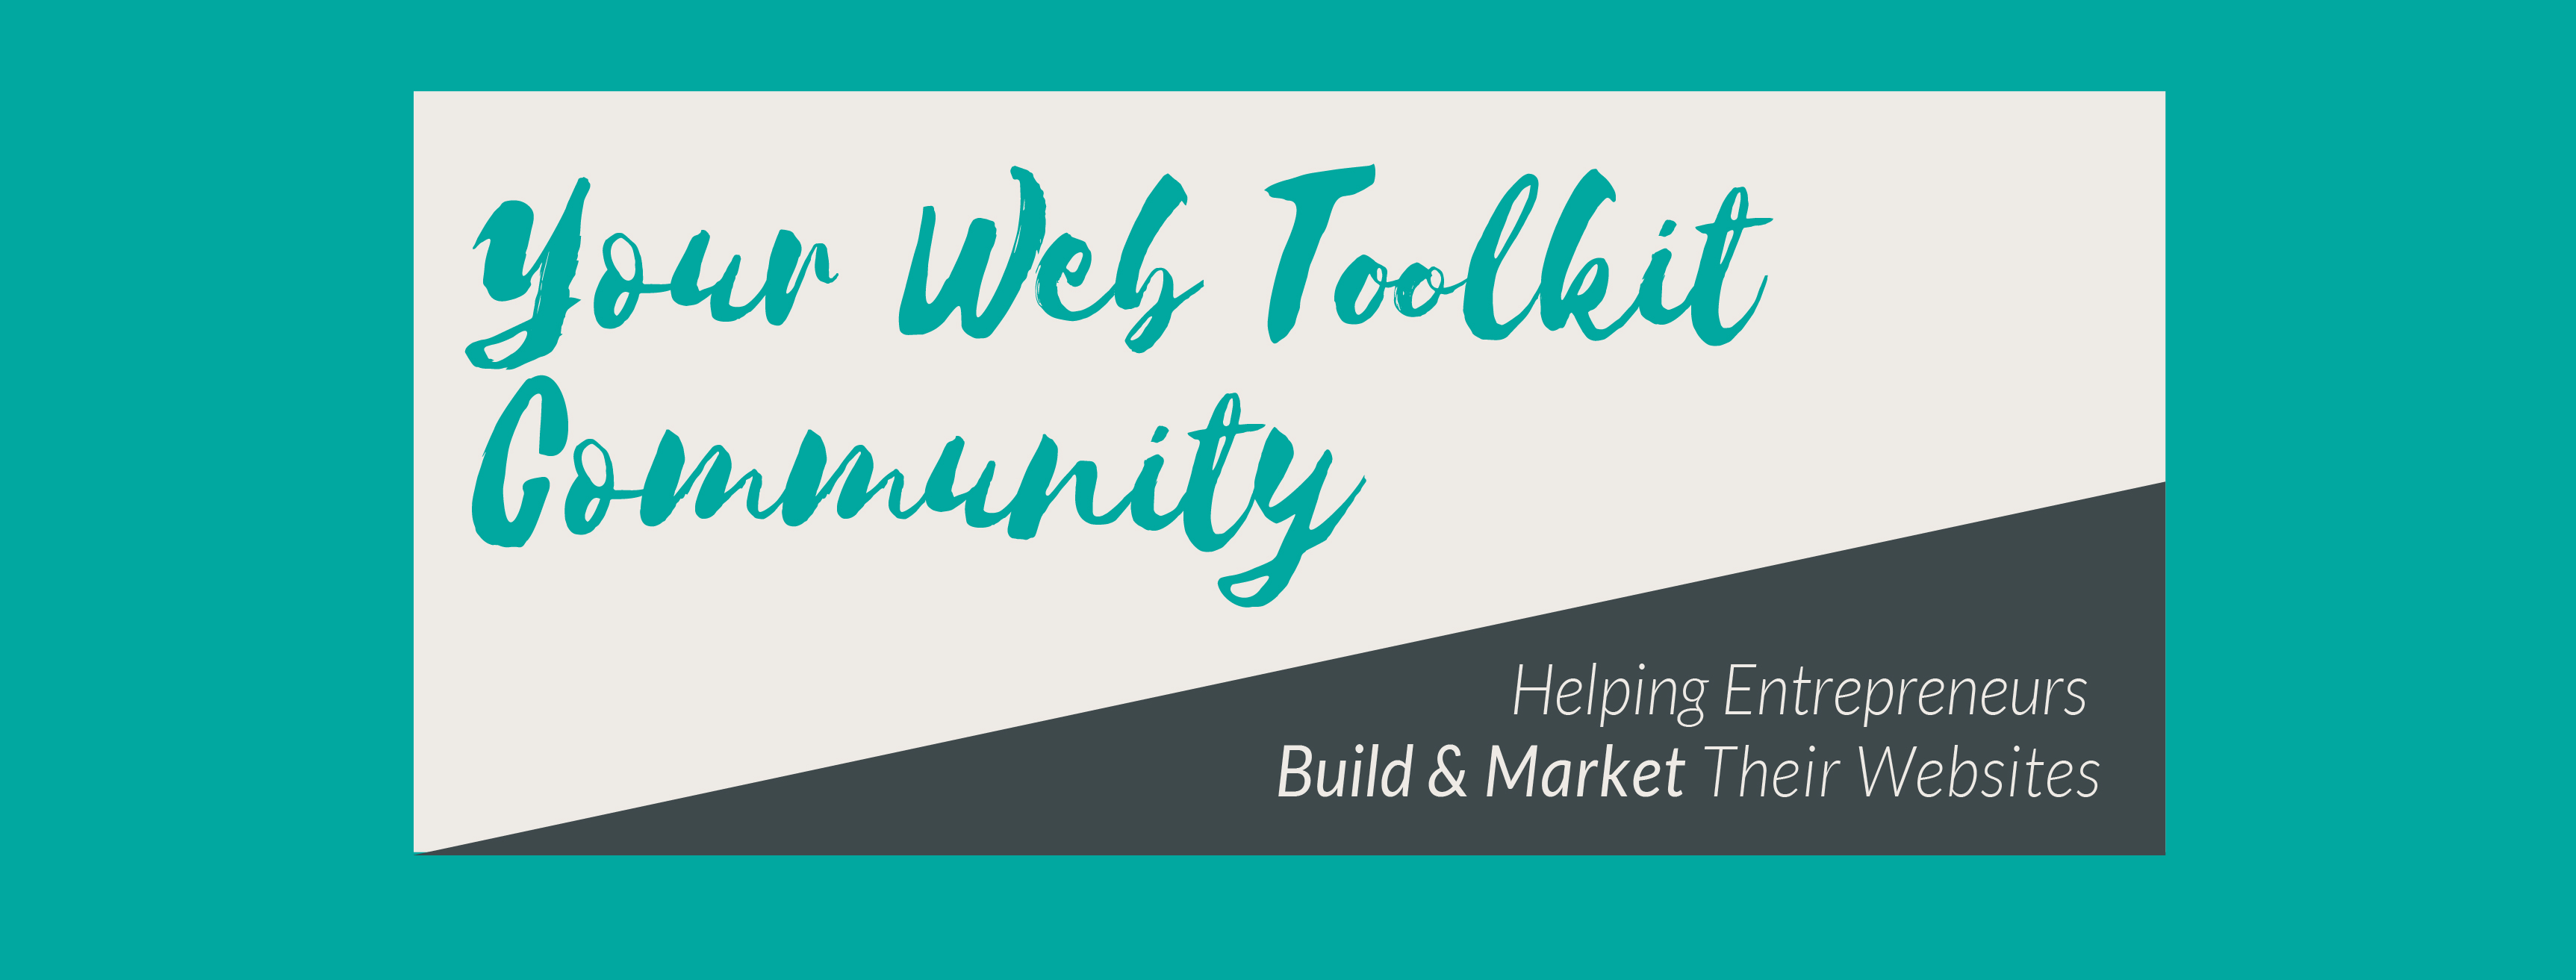 Join the Your Web Toolkit Facebook Community